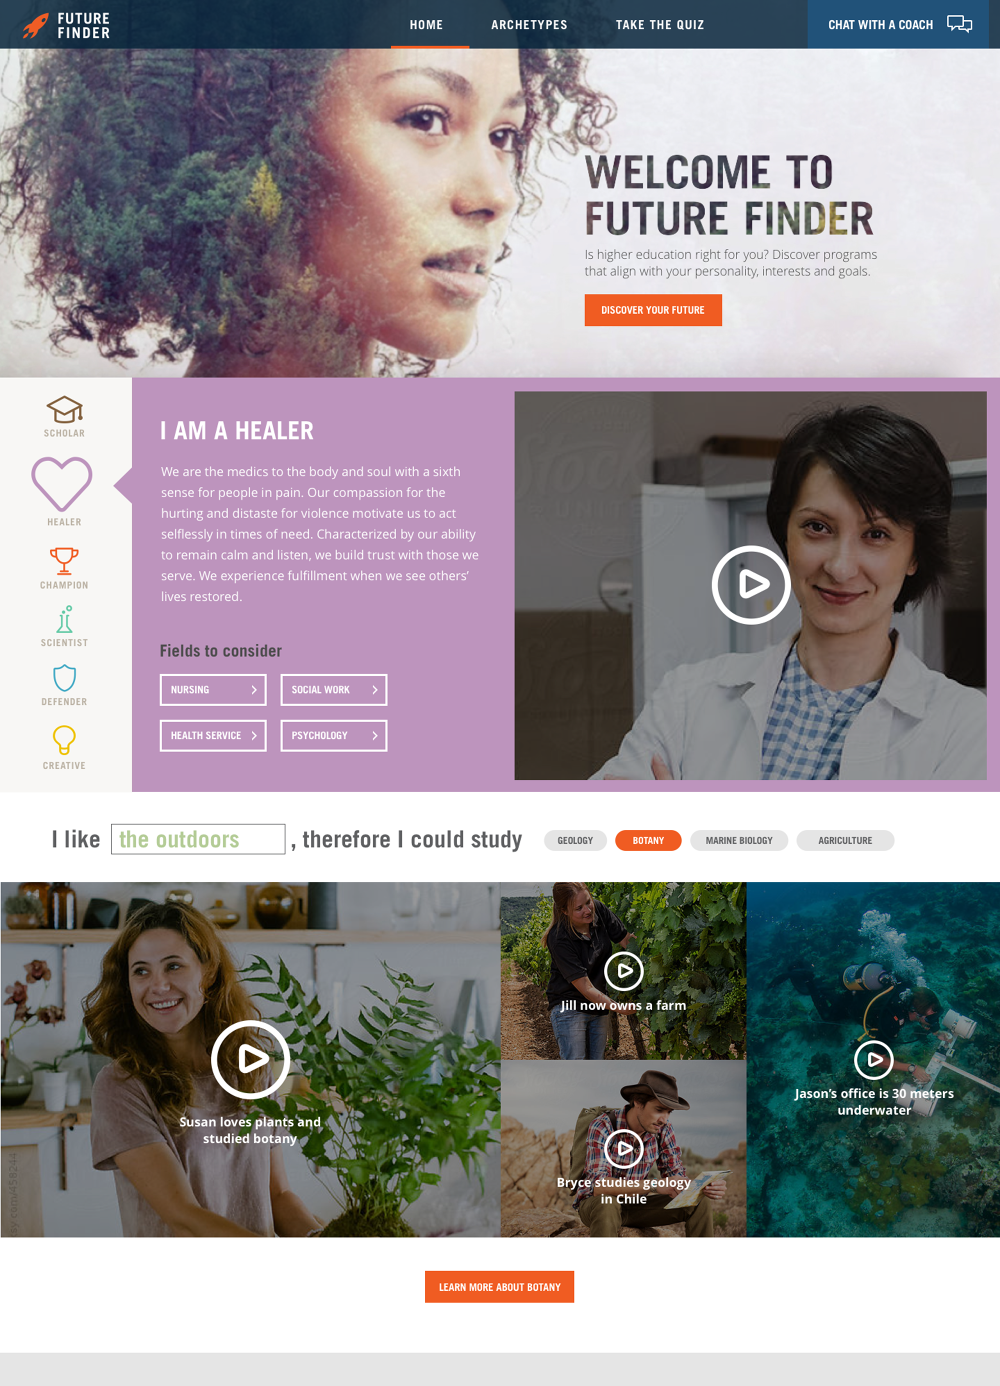 futurefinder-home-11782_1_1000.png